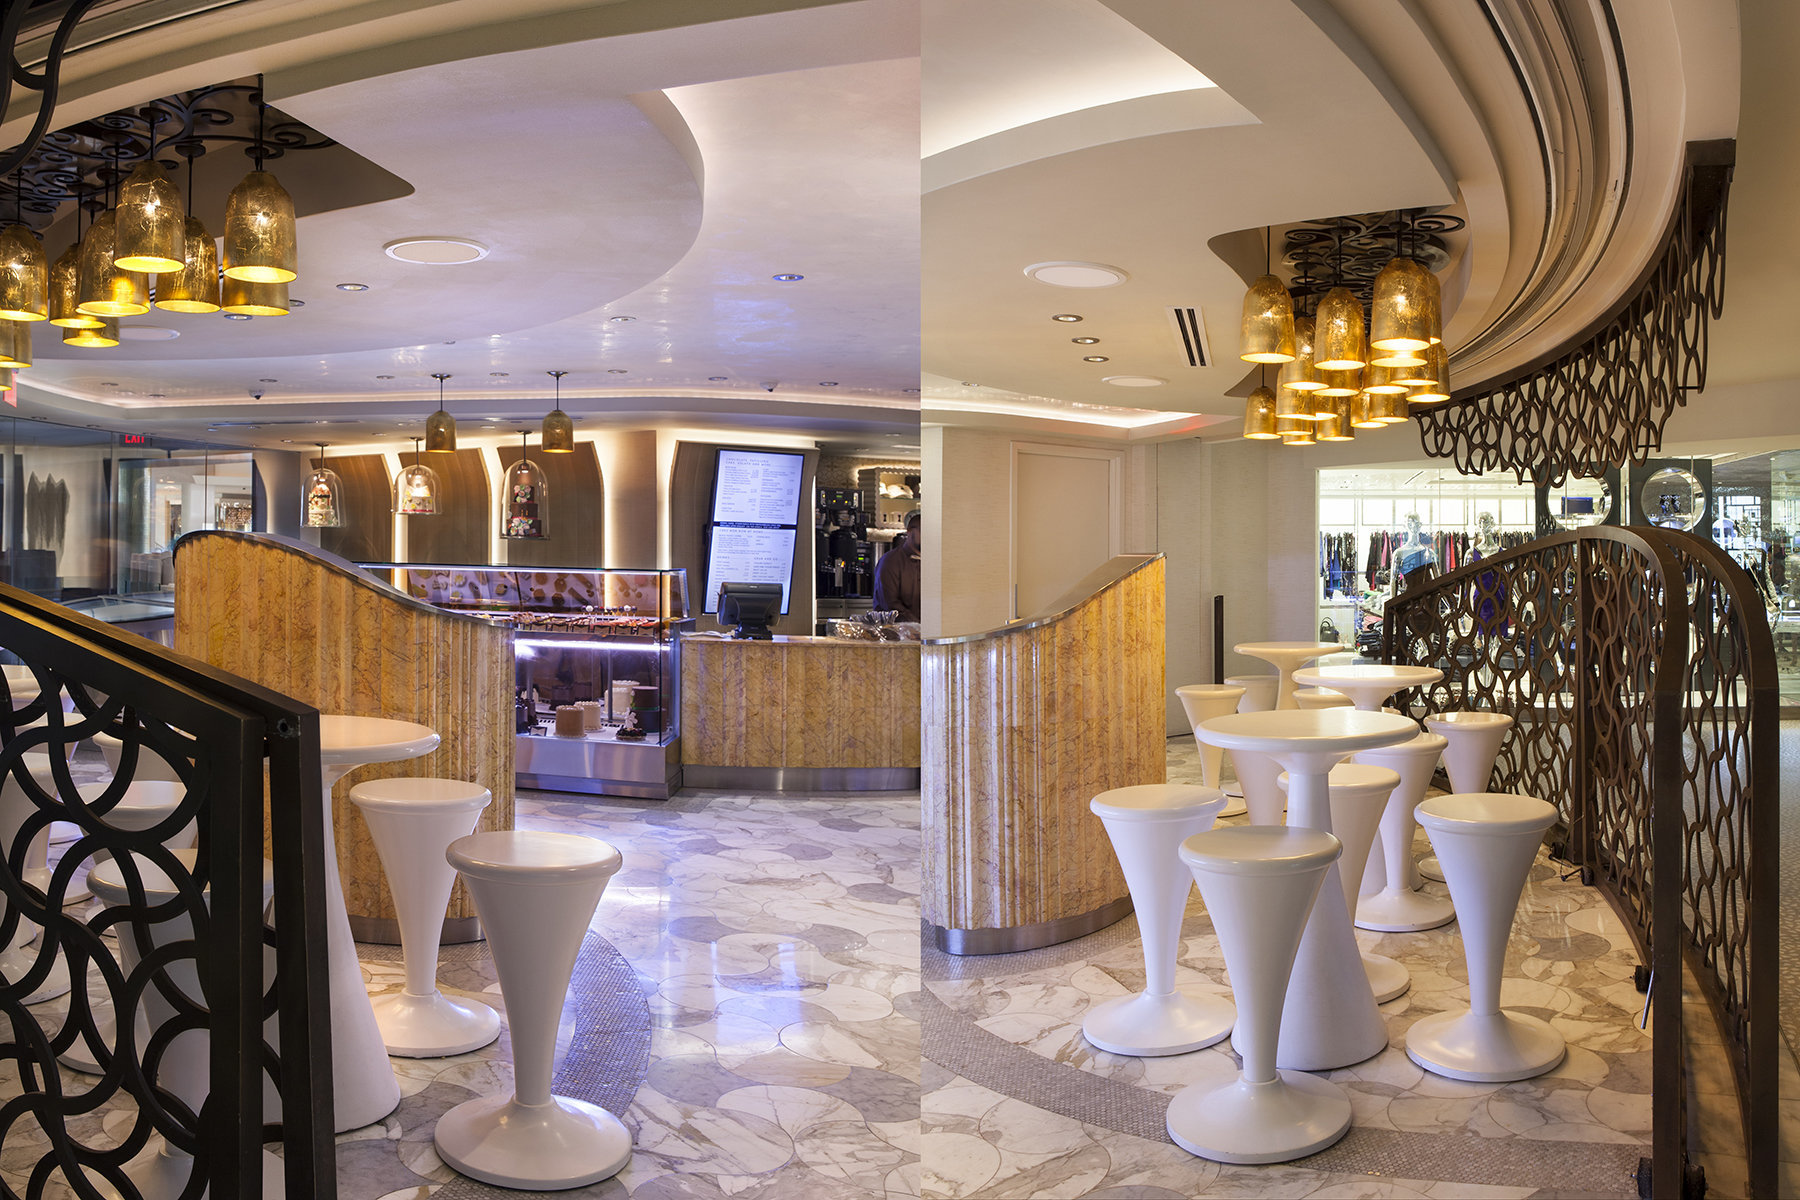 Chez Bon Bon at at The Fontainebleau Miami Beach, FL